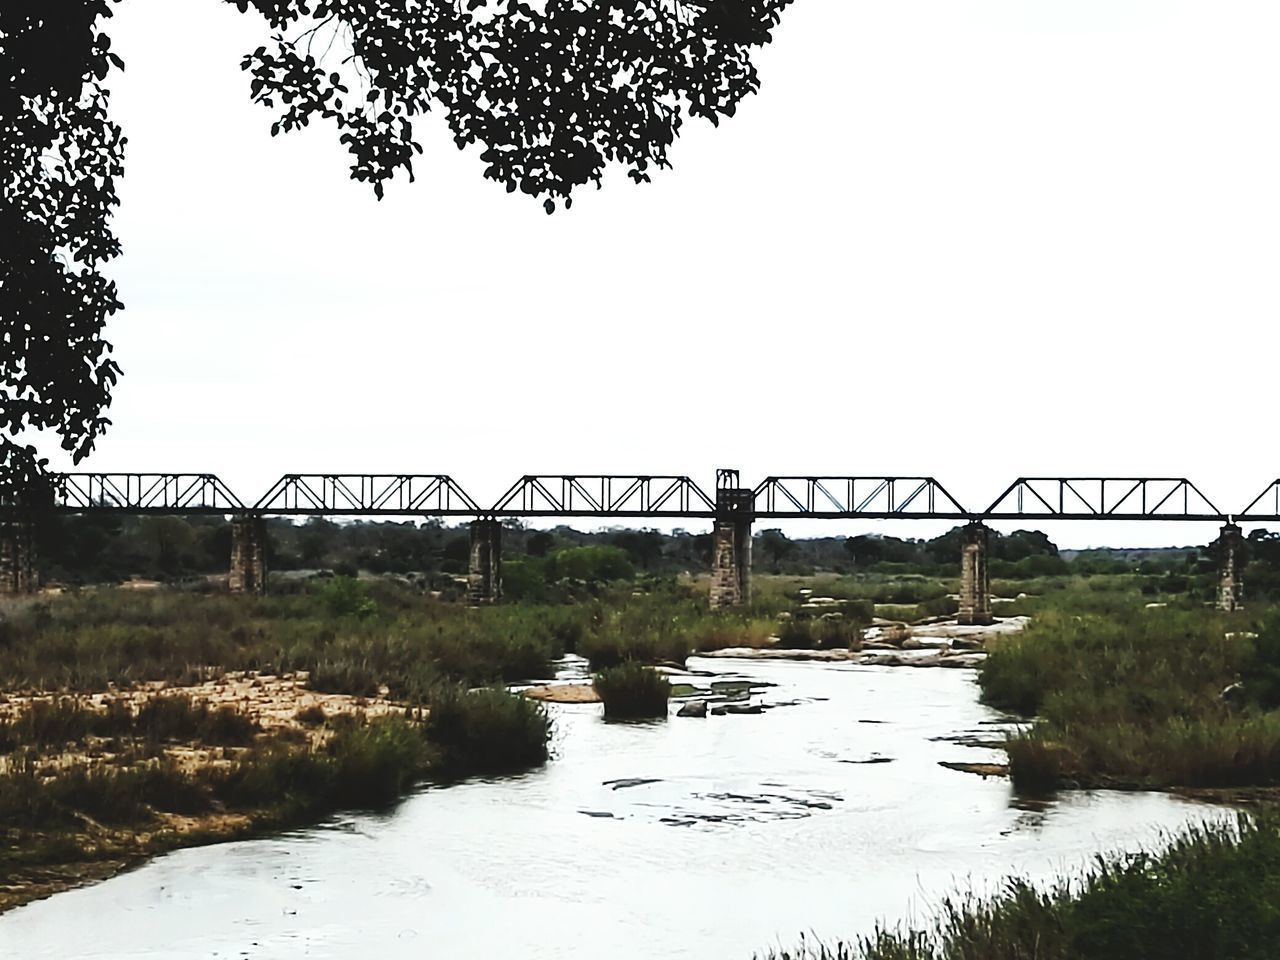 Water Bridge - Man Made Structure Architecture Outdoors Built Structure No People Sky Day Tranquil Scene Kruger National Park, South Africa Africa Outdoors❤ Nature Followme Travel Destinations Southafrika Krugerpark Architecture Southafrica Unique